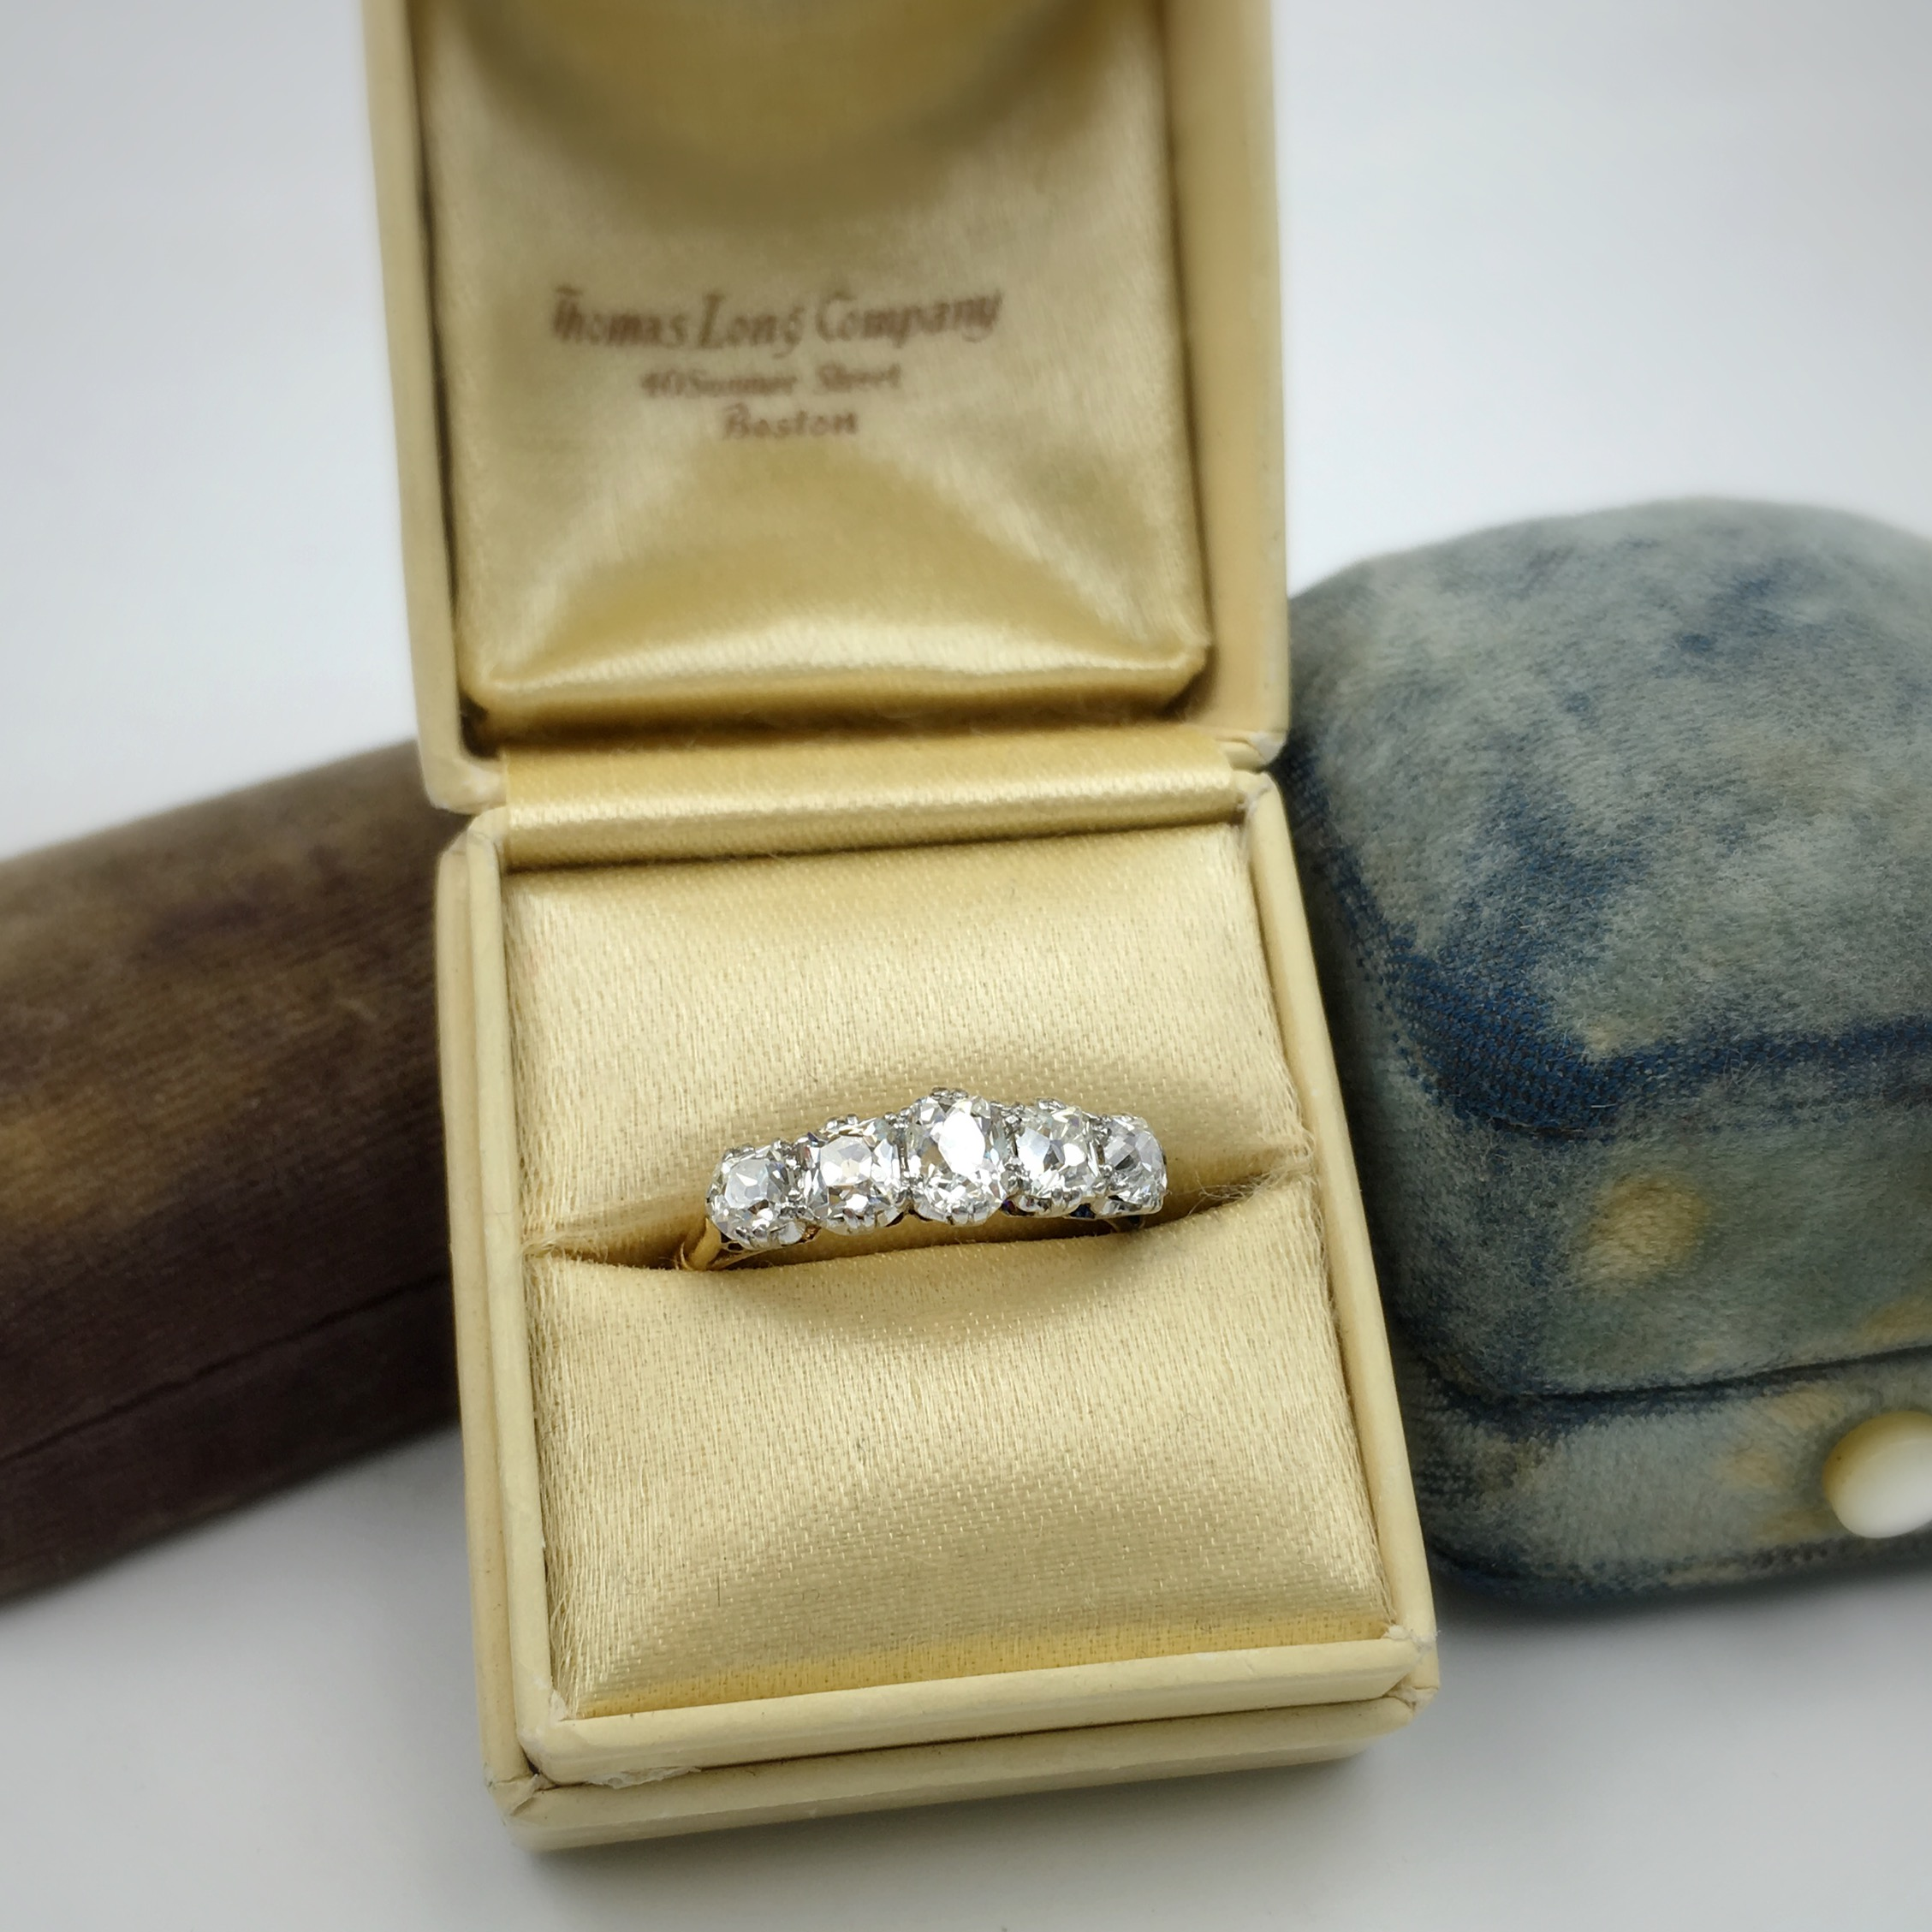 Exceptional Edwardian Five Stone Diamond Ring Reverie